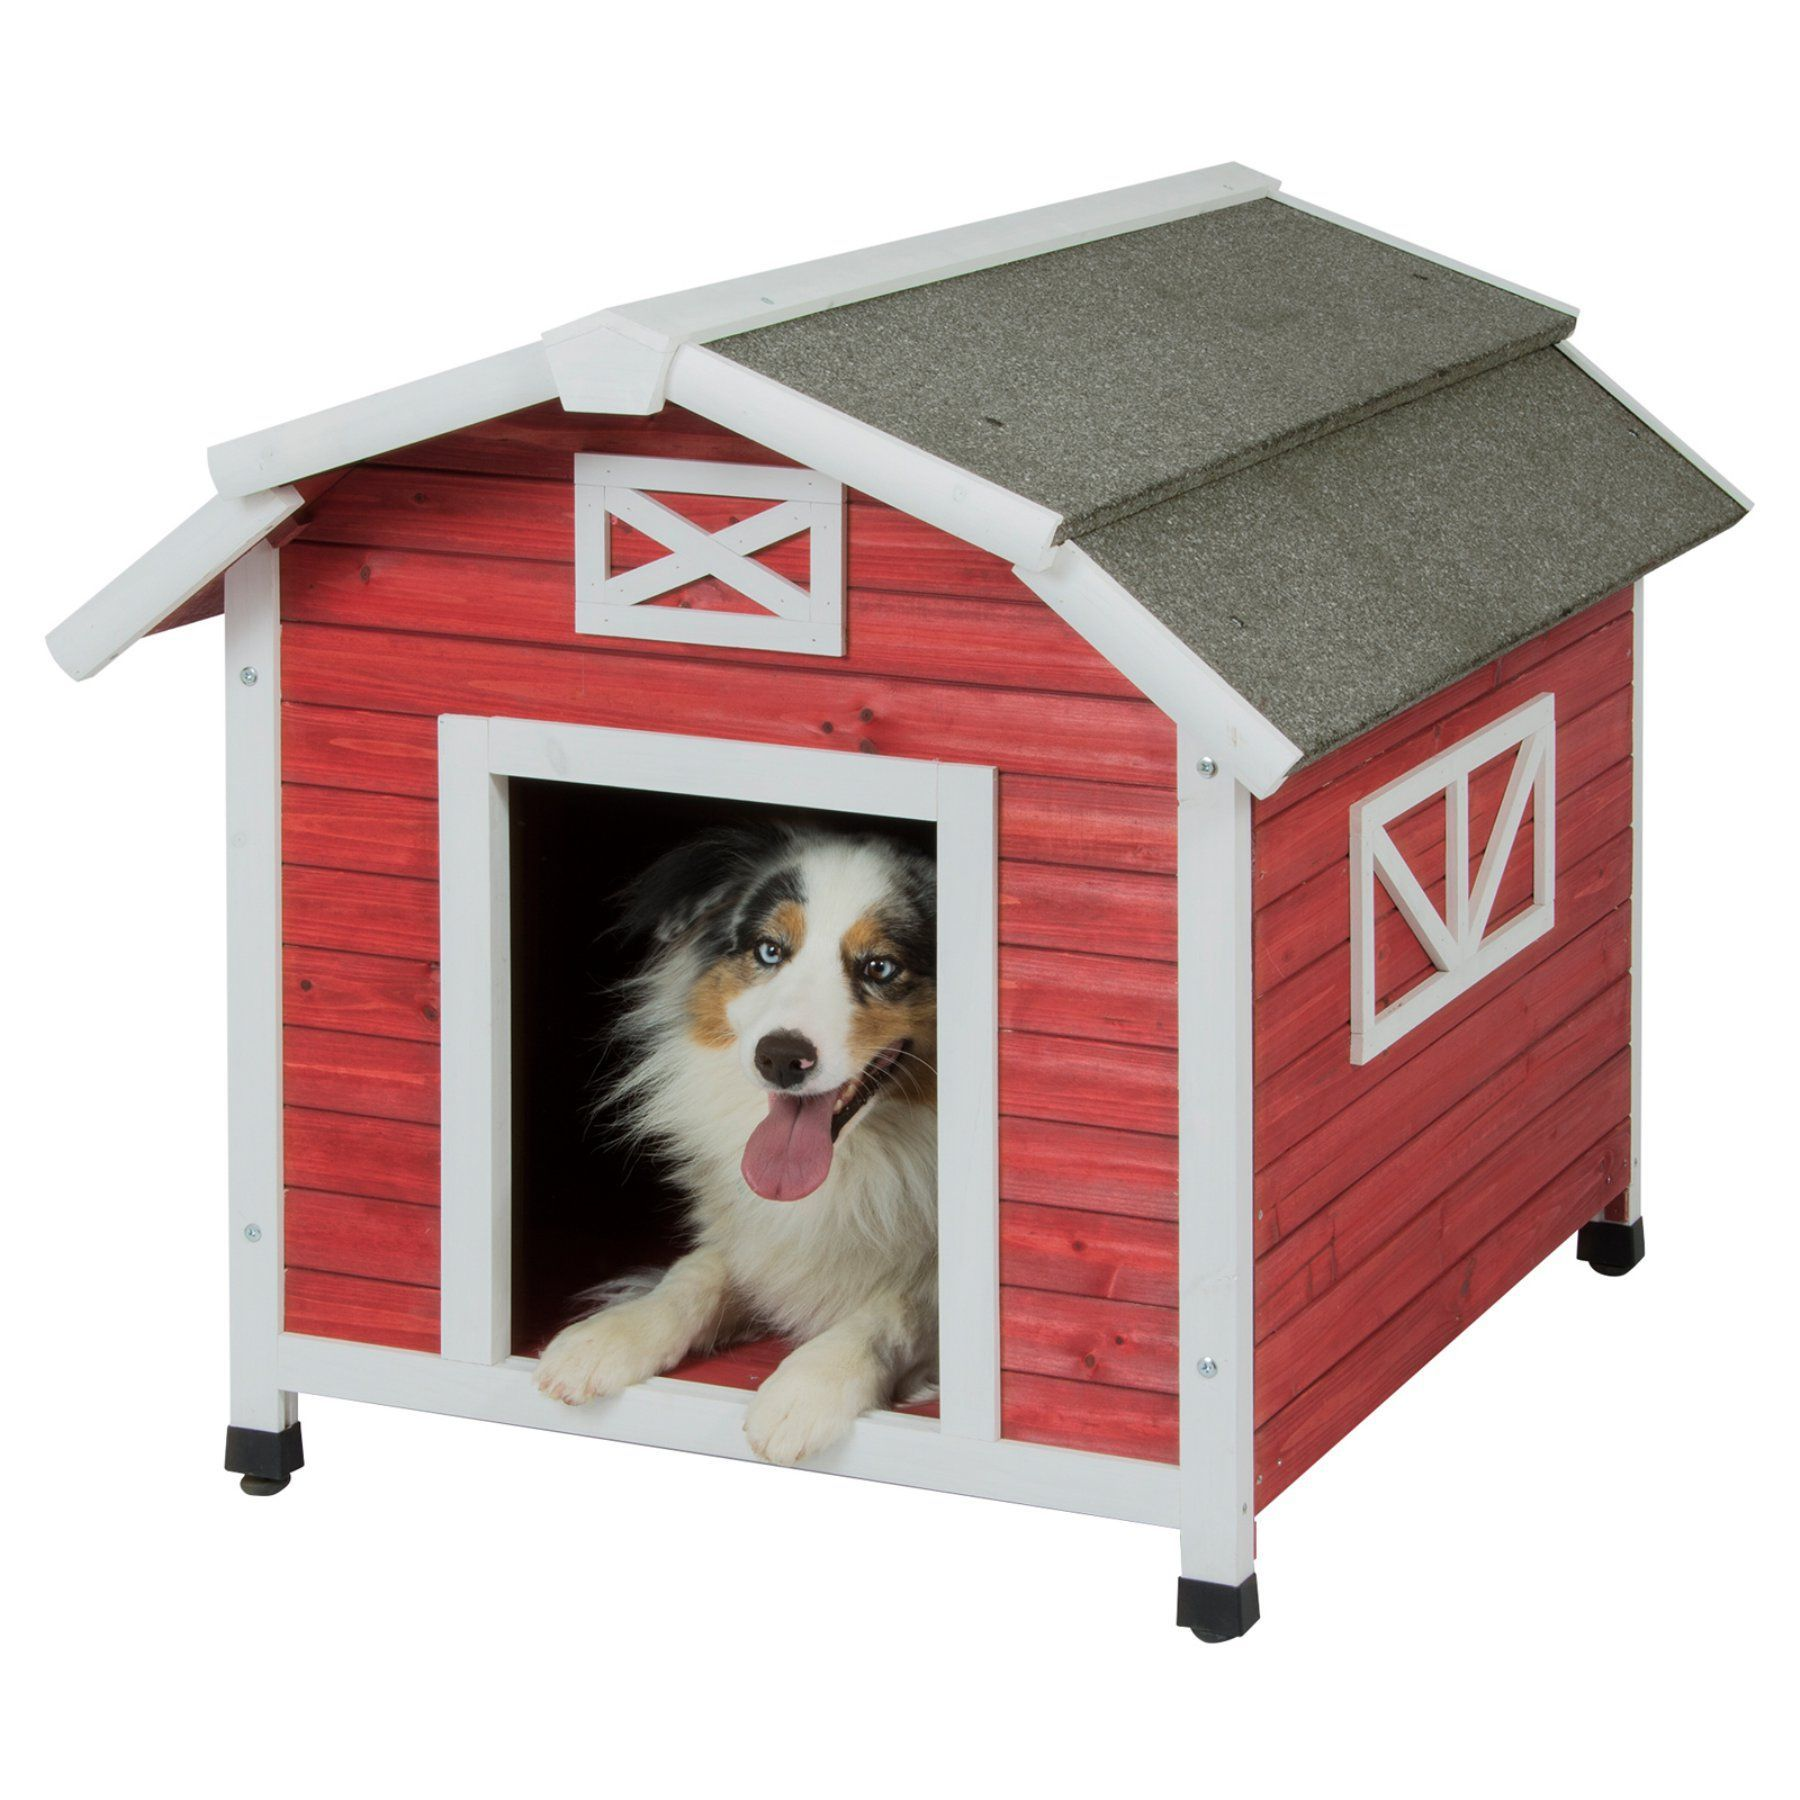 Precision Pet Barn Dog House For Large Dogs 7027120 Cool Dog